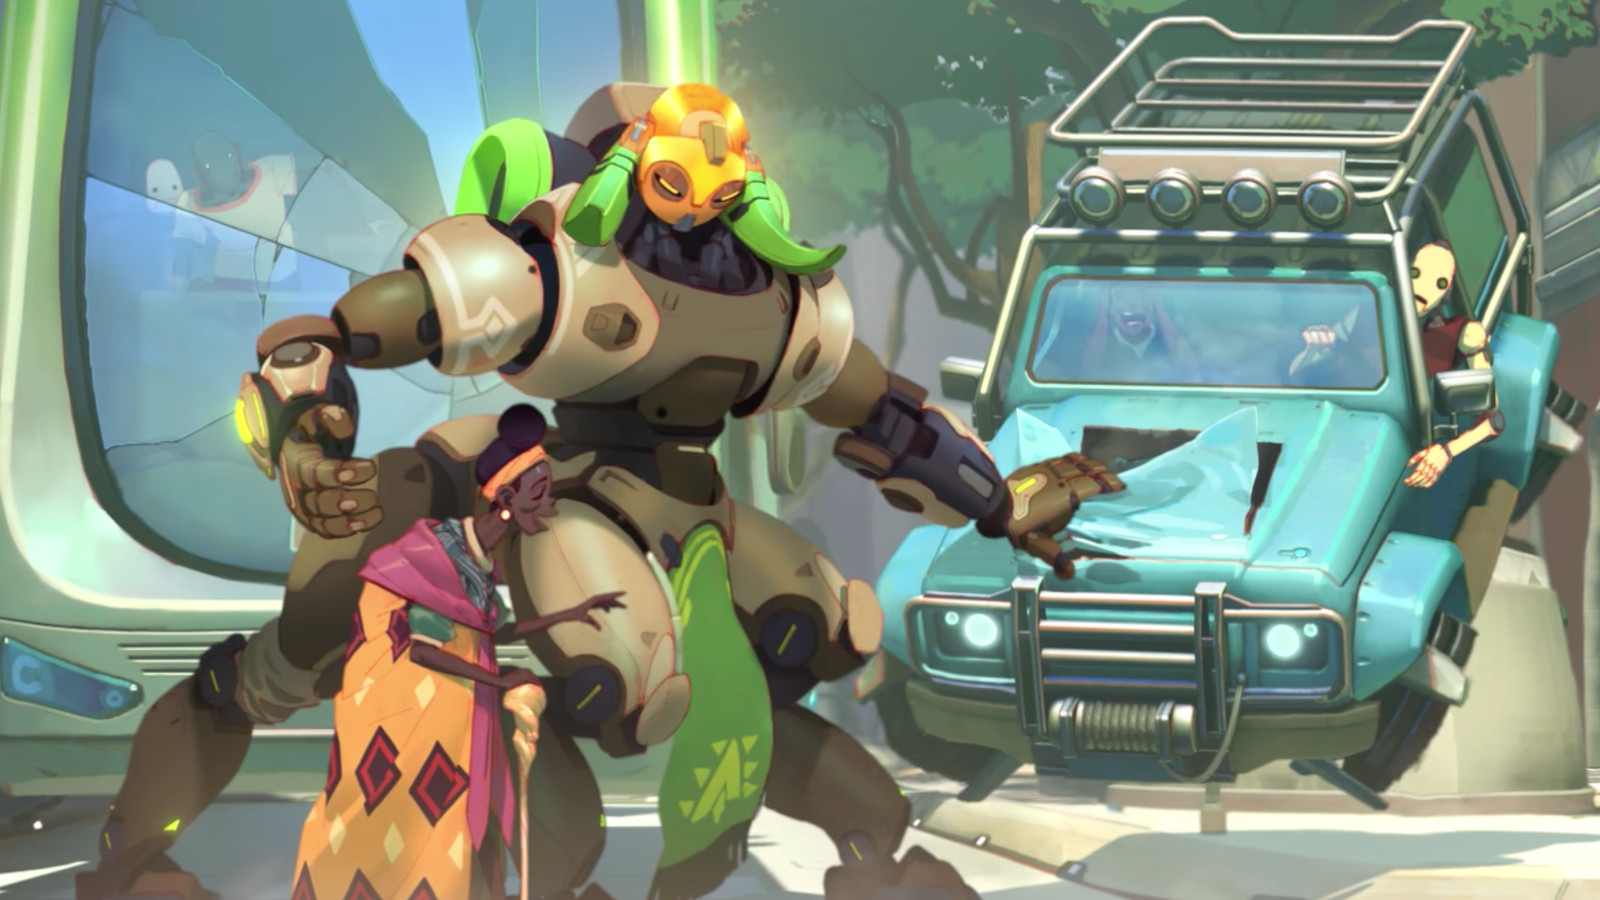 overwatch u2019s new hero orisa  all her skins  emotes and